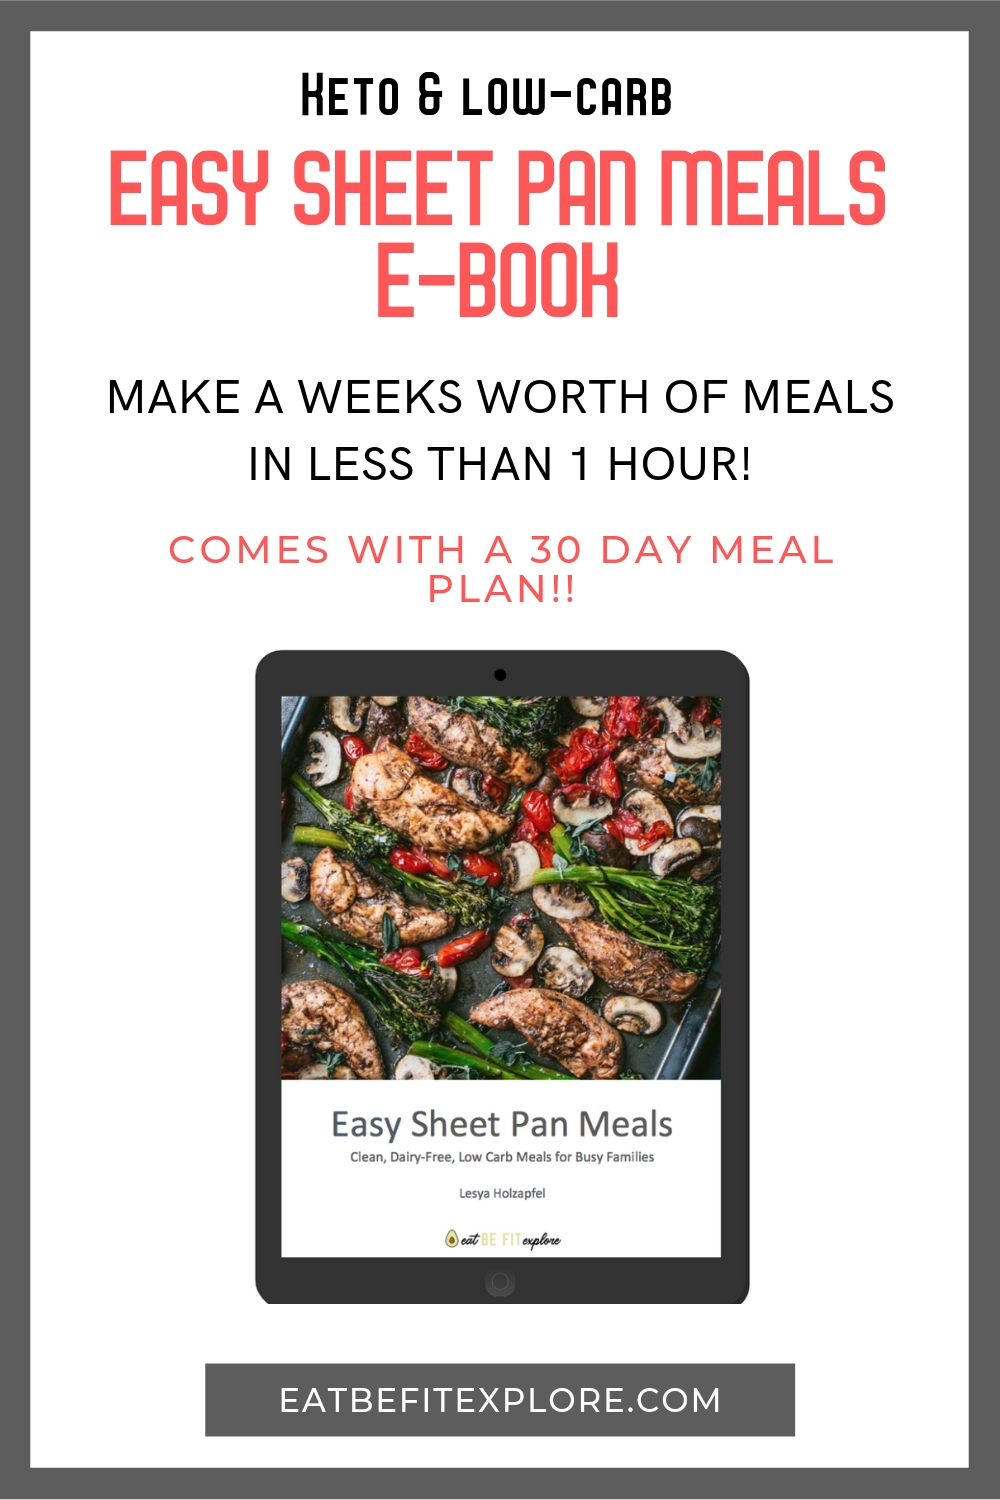 Easy Sheet Pan Meals | Free Keto Meal Plan, Meal Planning, Keto